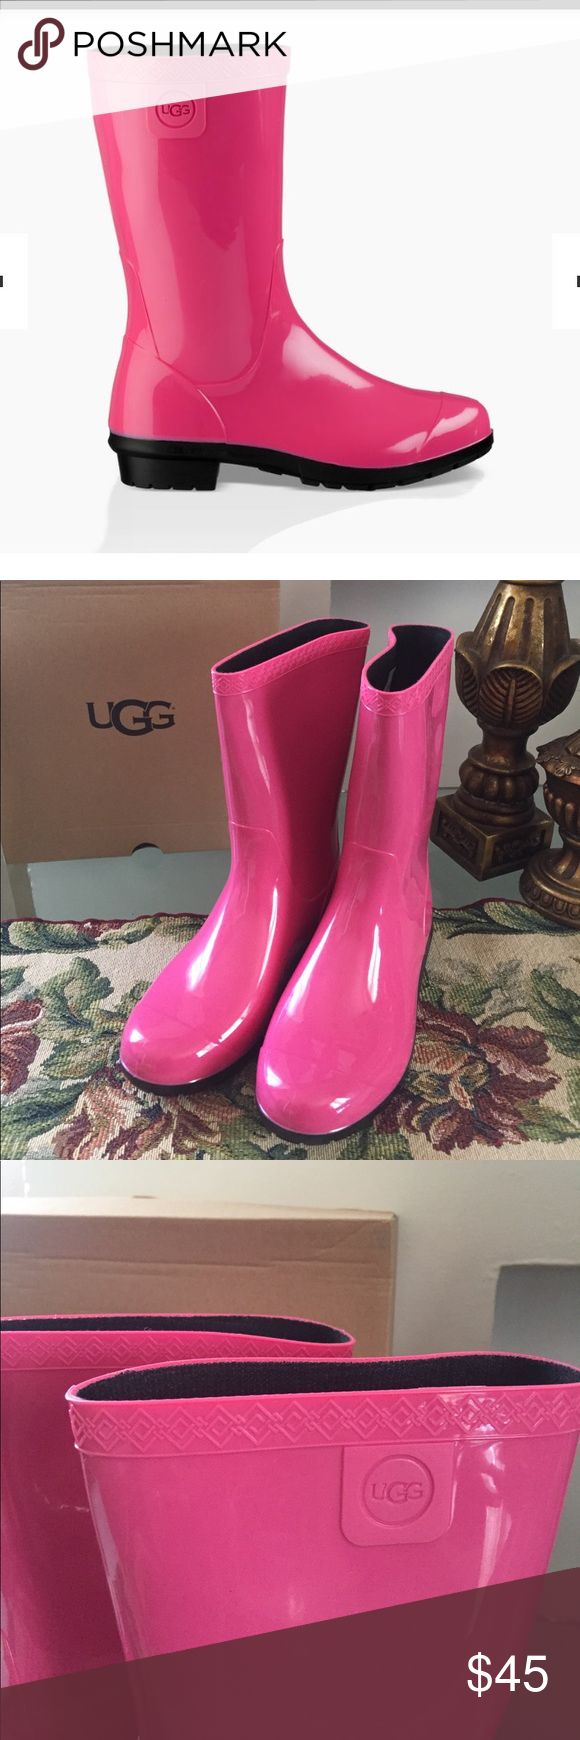 """NEW UGG RAANA. DIVA PINK. Big kids 4--women 6 These waterproof PVC boots are perfect for hopping in puddles or wading through tide pools. PVC EVA and sheepskin insole Waterproof construction 8.25"""" shaft height UGG Shoes Winter & Rain Boots"""